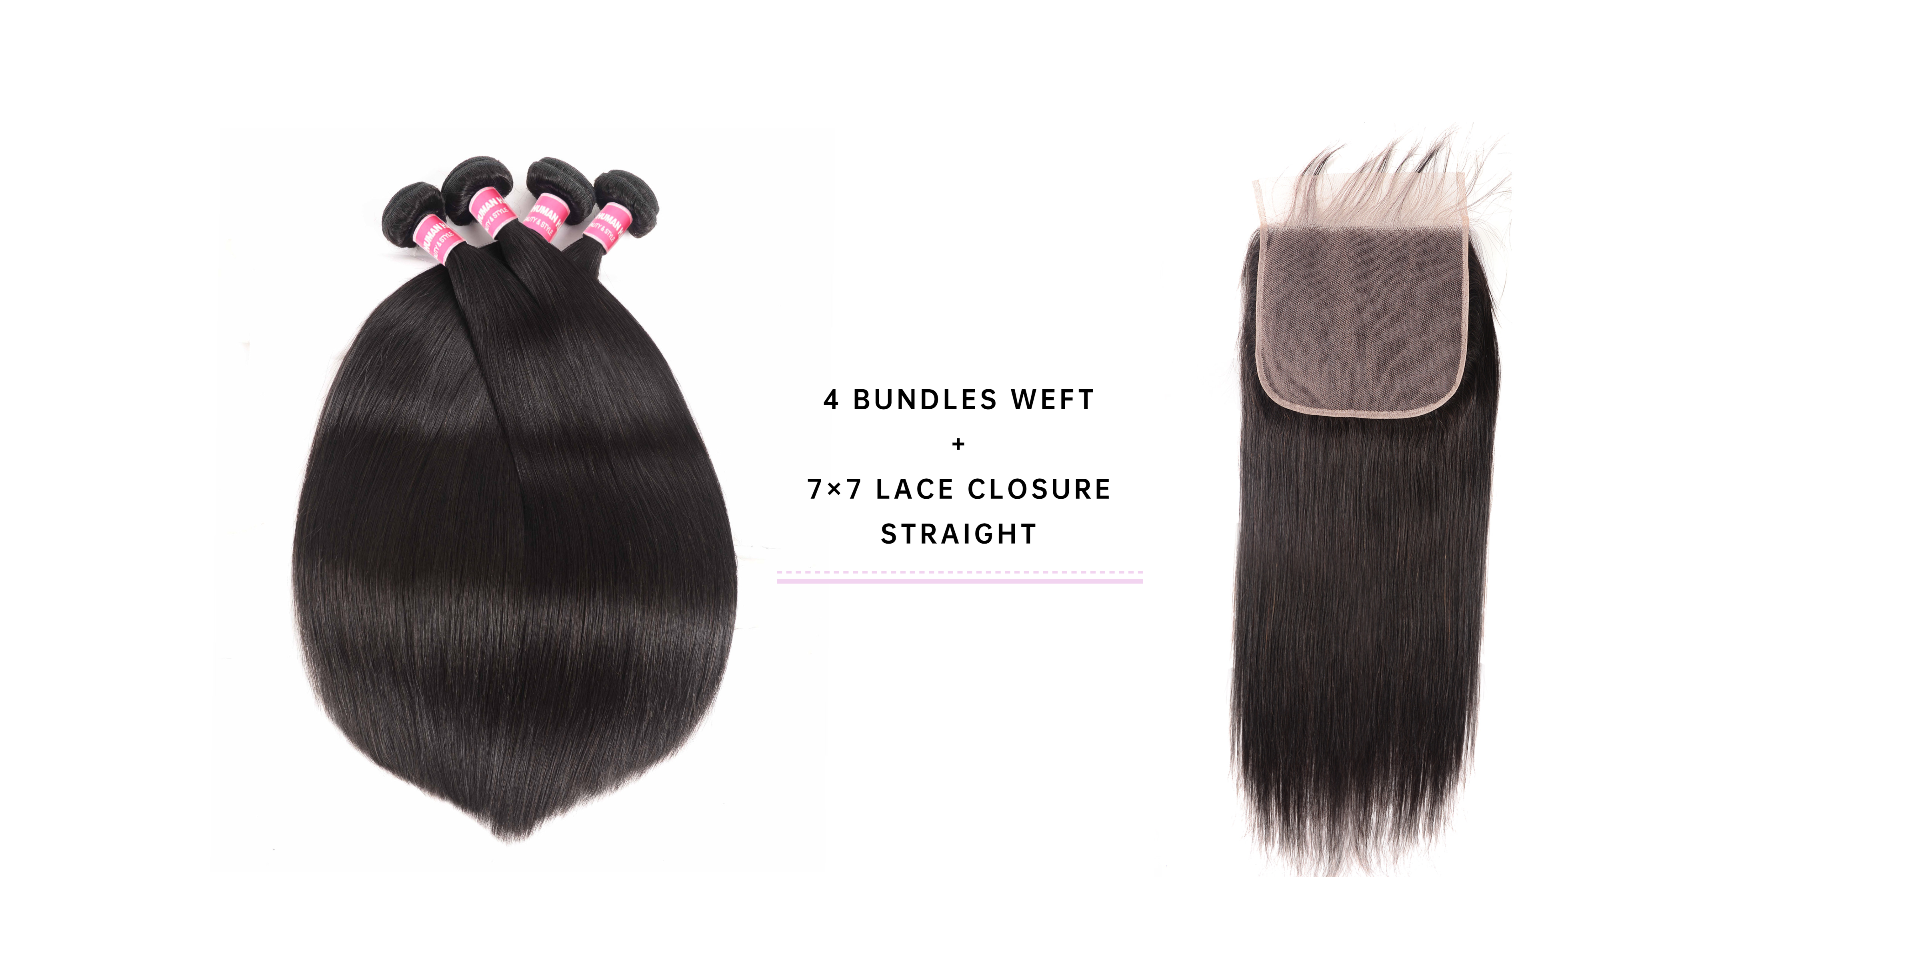 4 Bundles Straight Virgin Hair With 7x7 Lace Closure